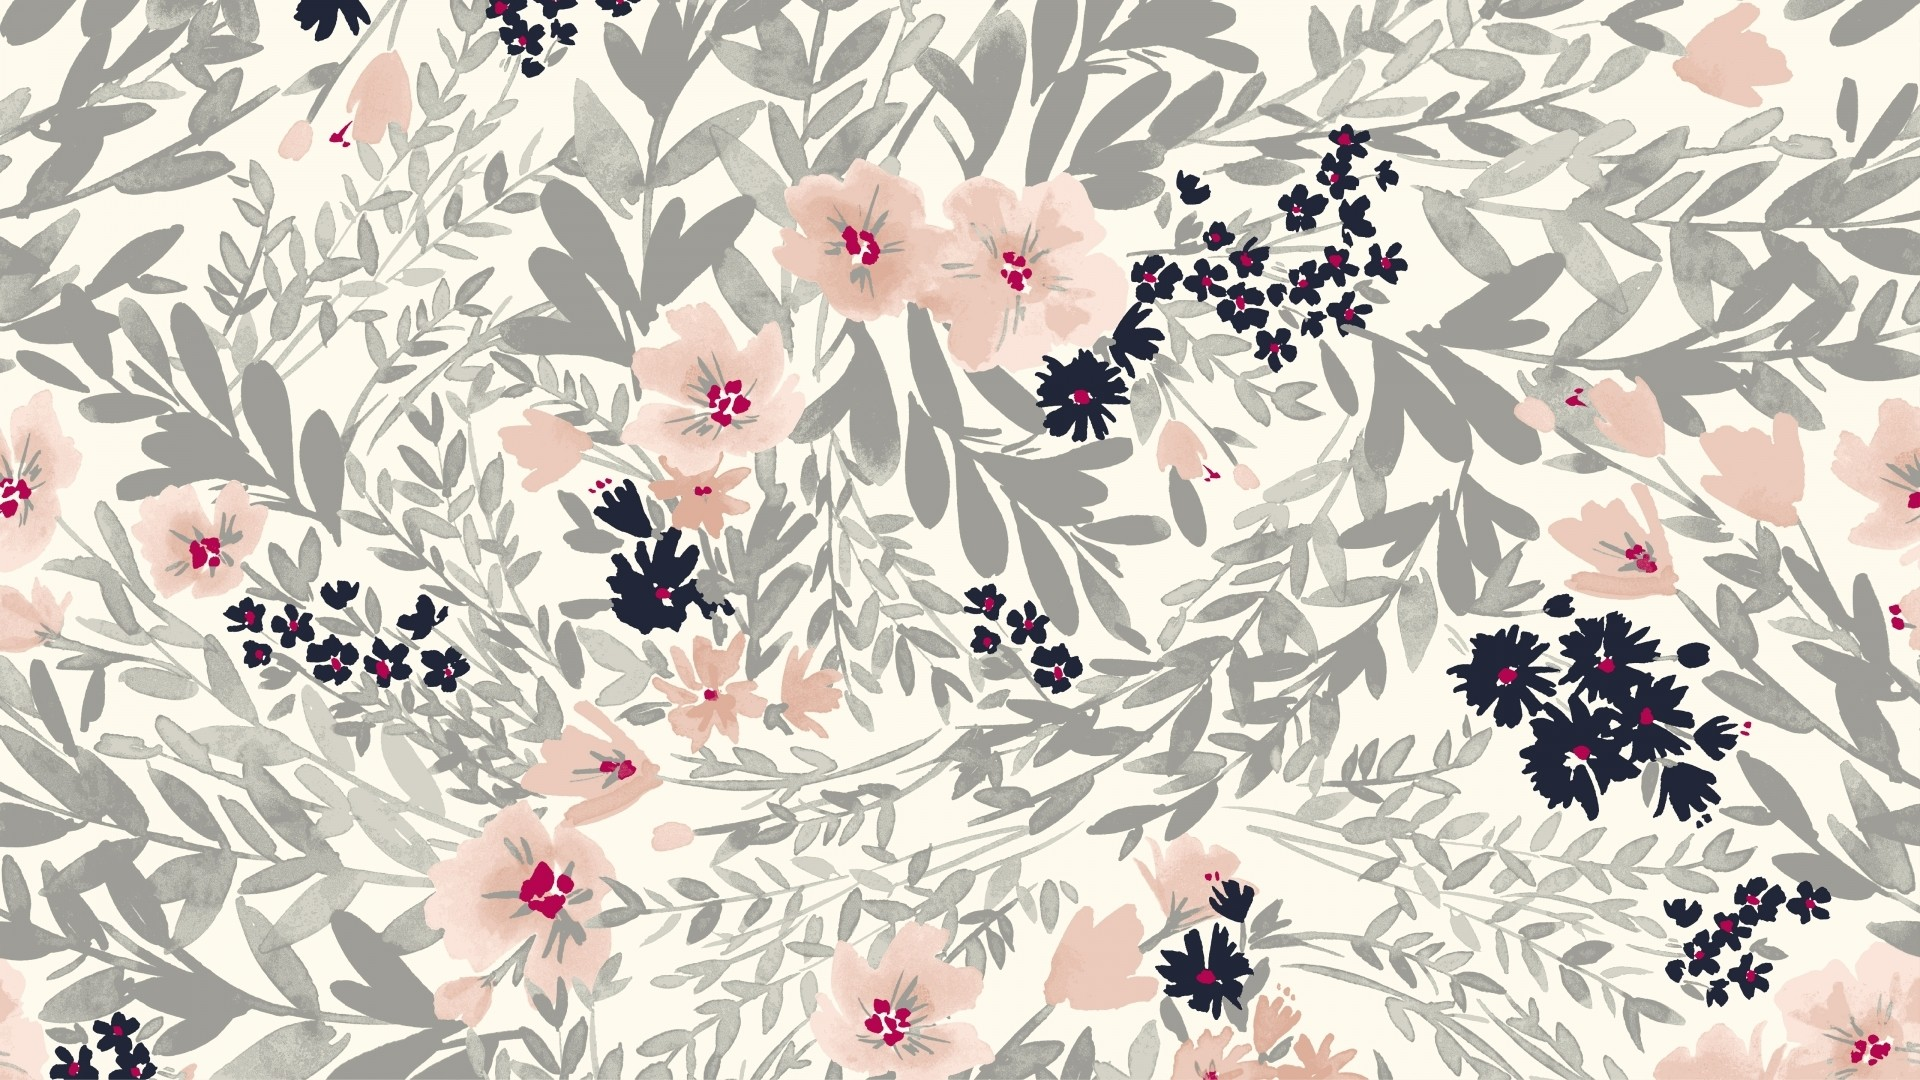 Spoonflower hd desktop wallpaper